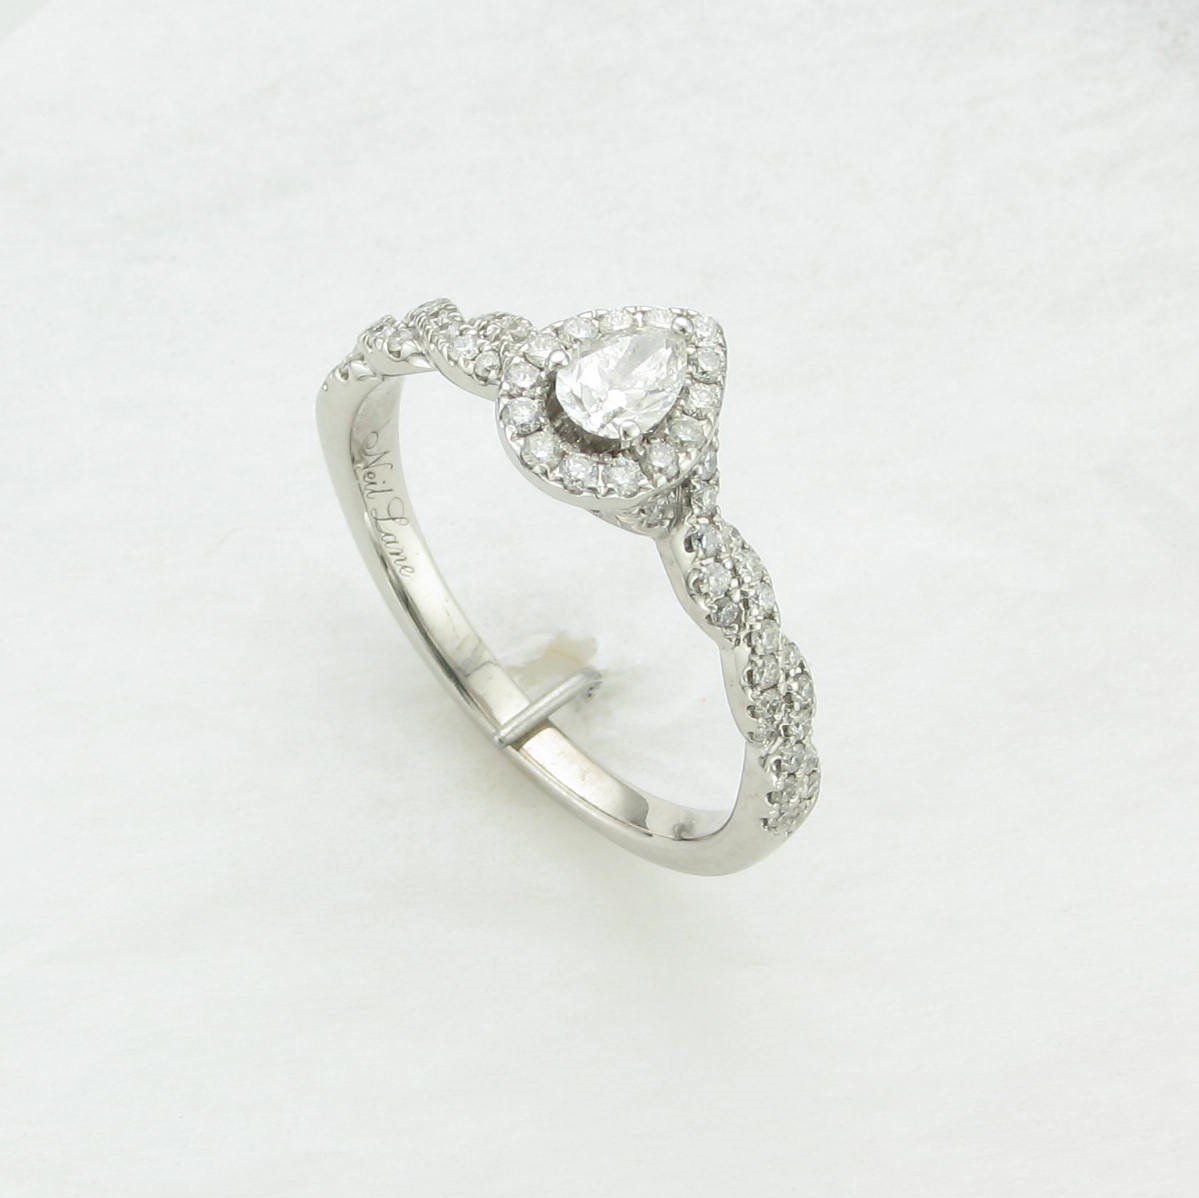 0.35ct Pear Diamond with Halo Ring set in 14K White Gold